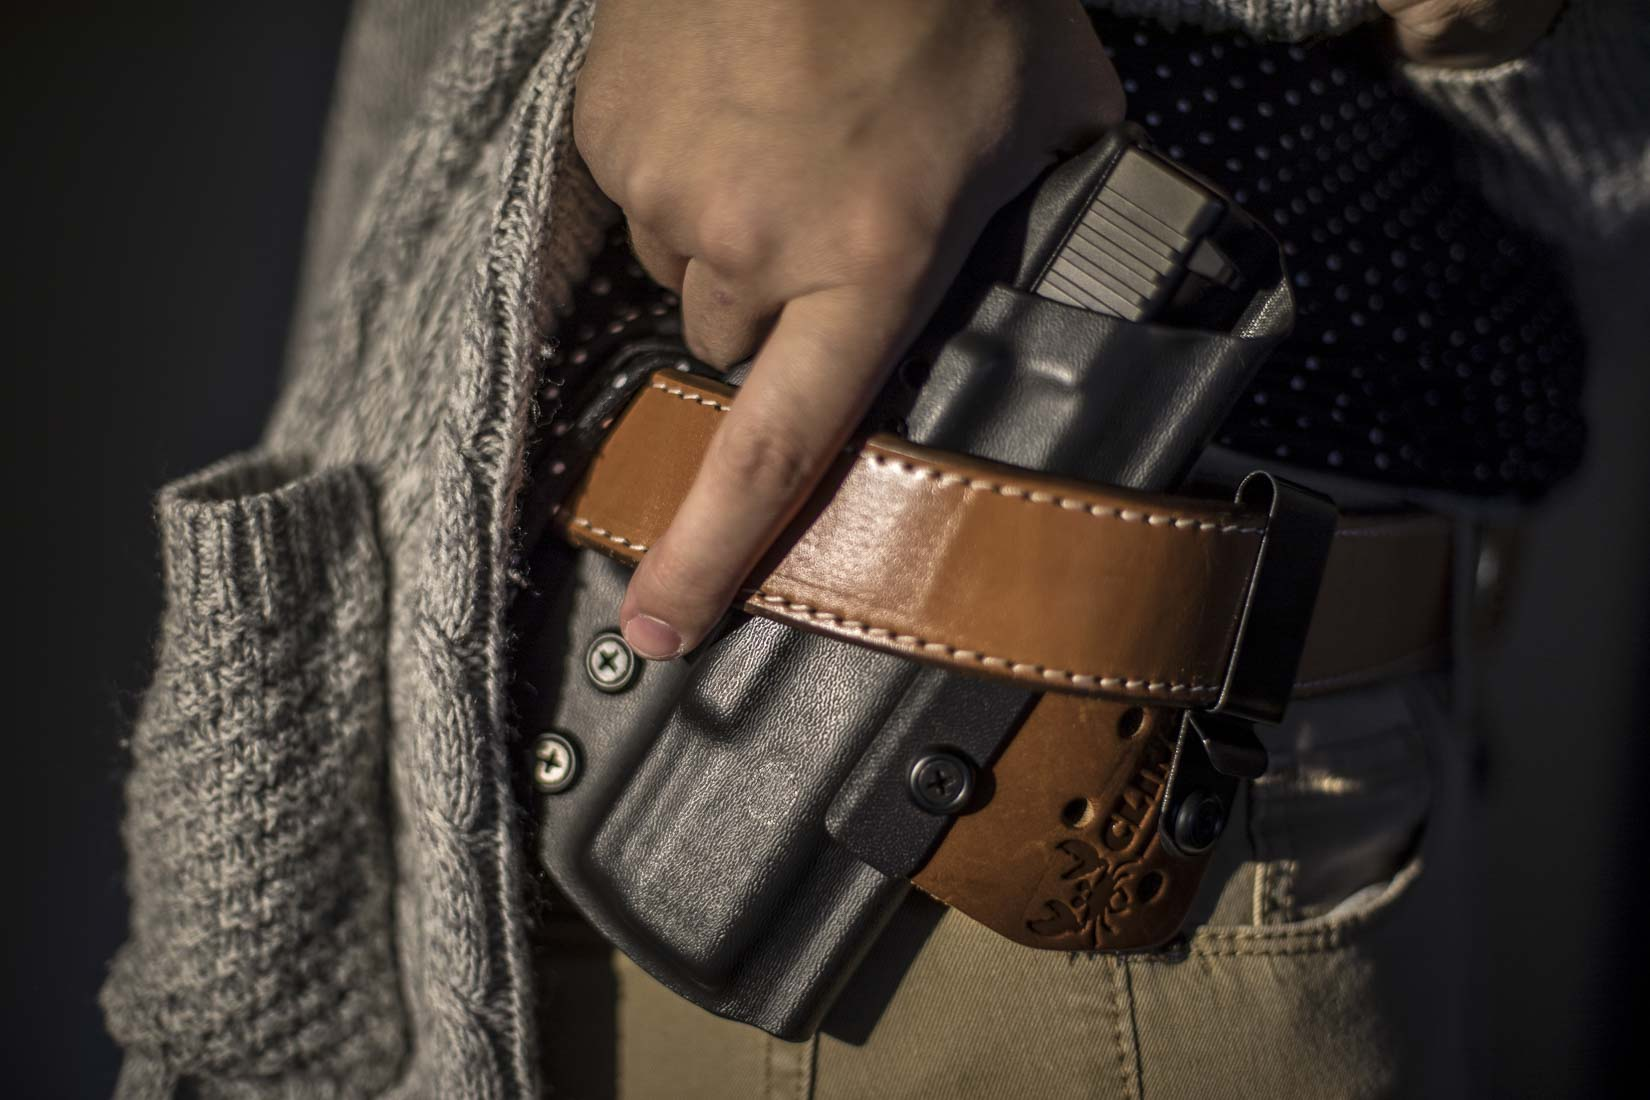 Tips for Choosing the Right Concealed Carry Holster